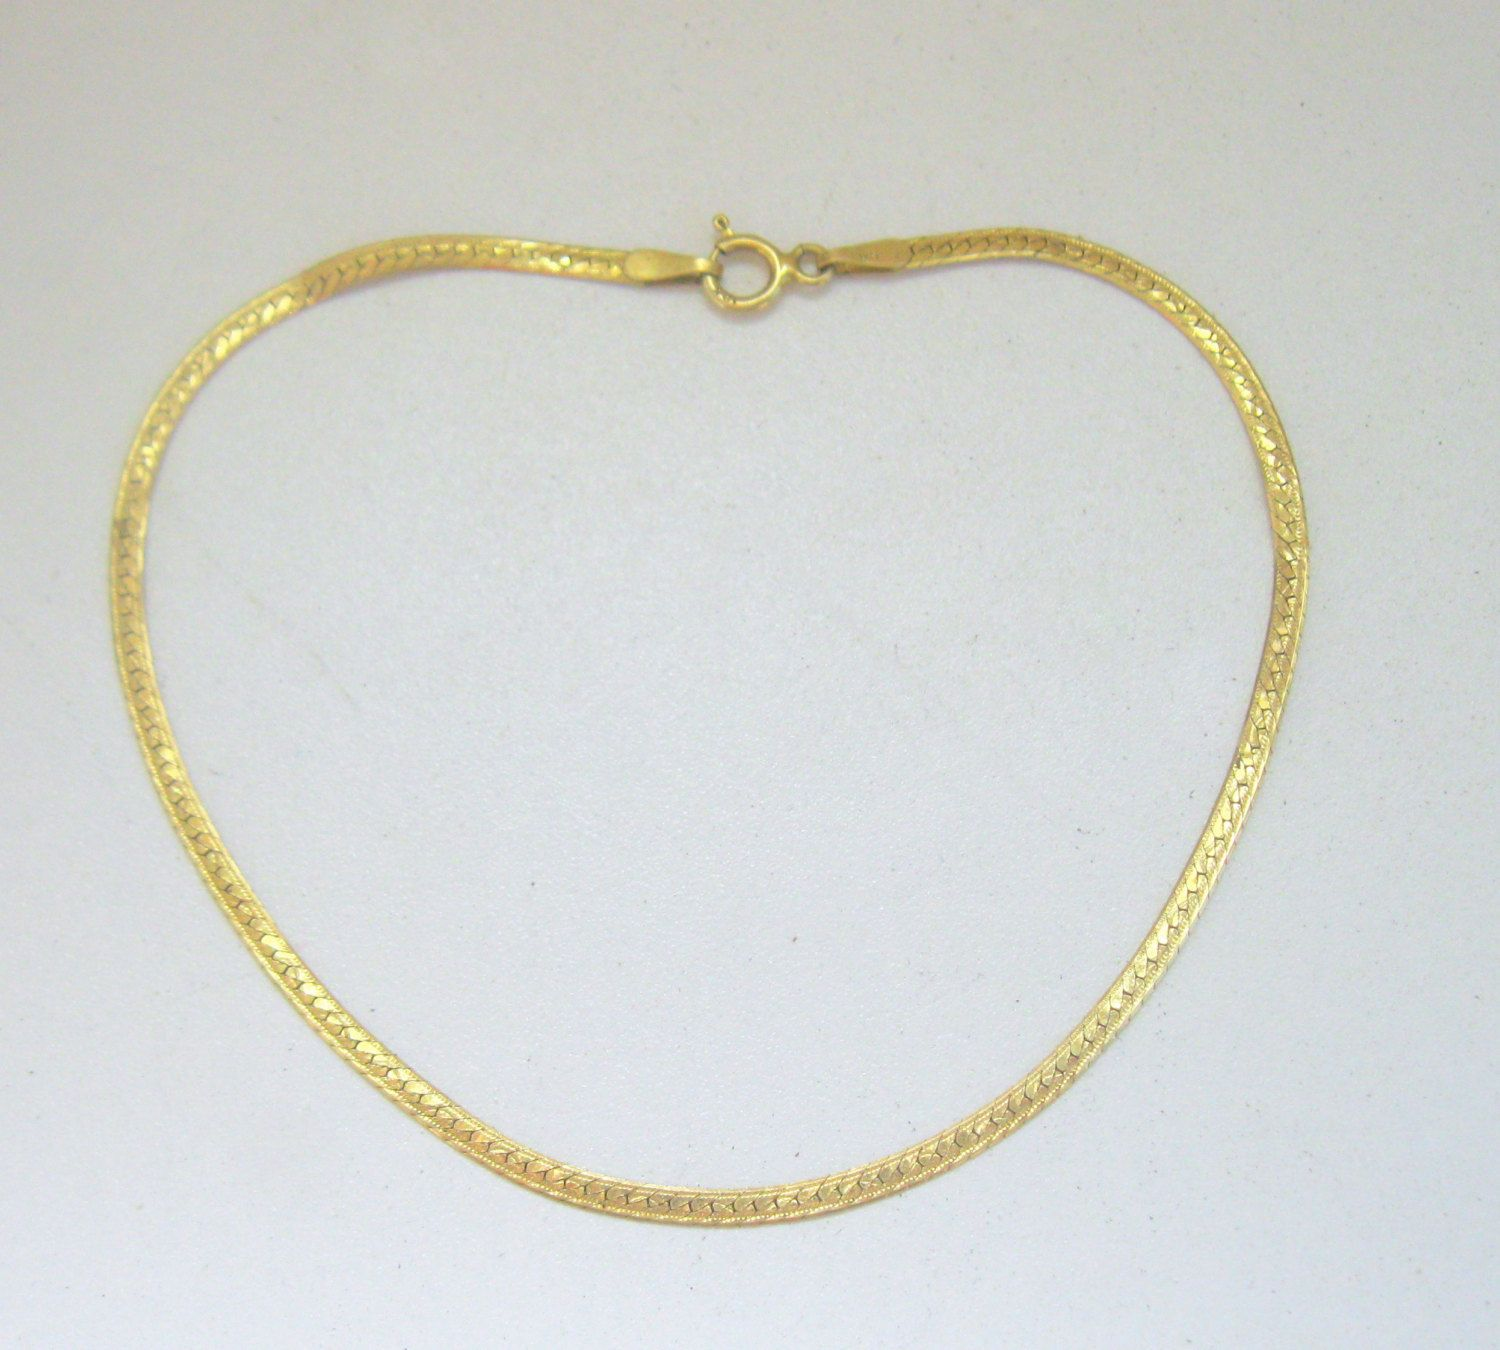 SOLID 18K GOLD Bracelet Italy 8 Inches Long Vintage 80's Priced Slightly above Spot Gold Price!! by PASTIMEJEWELS on Etsy